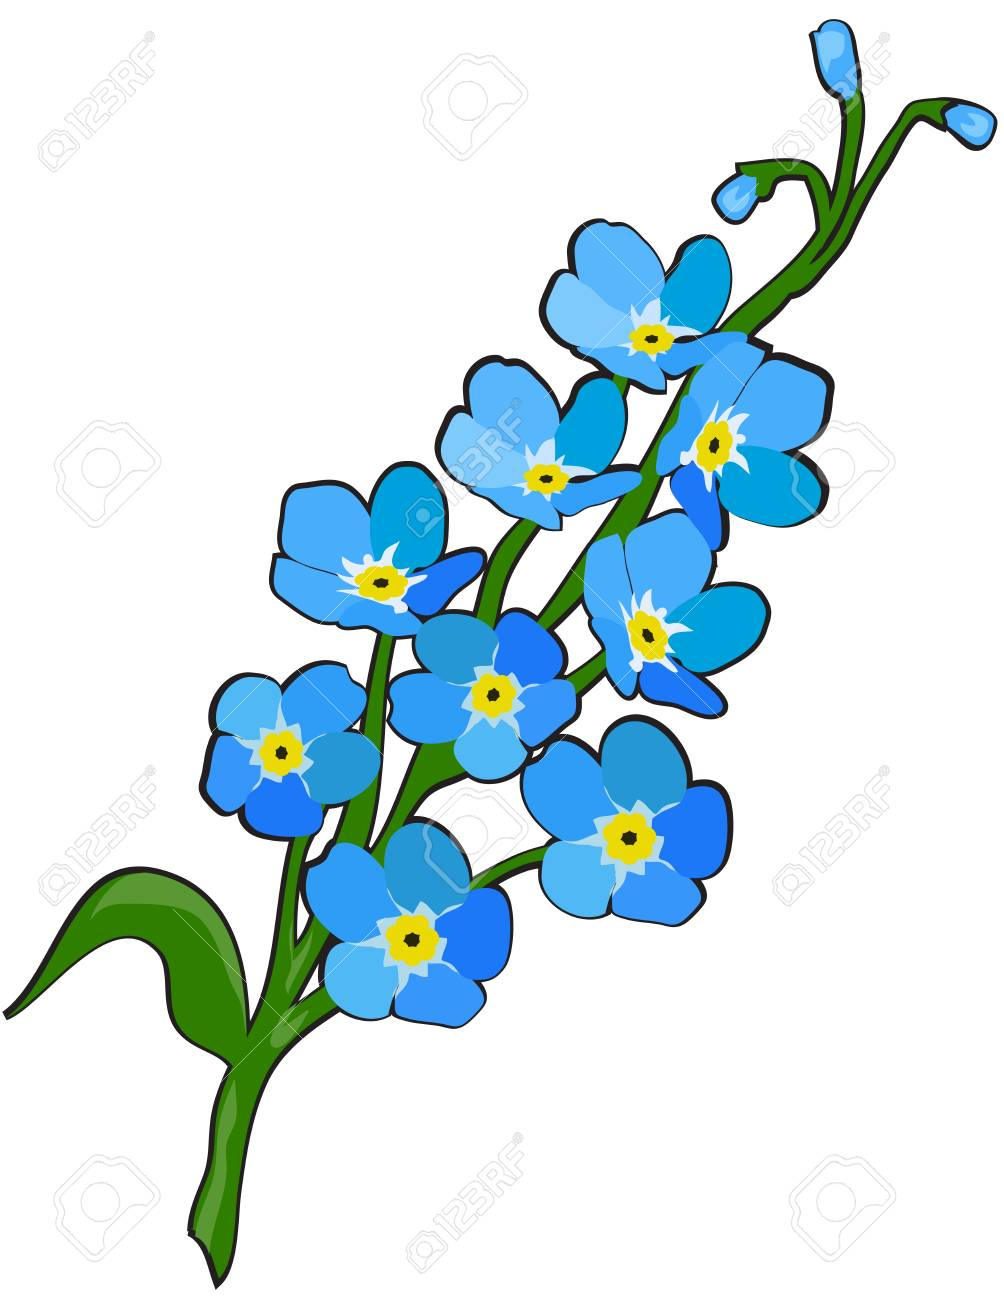 Forget me not flowers vector illustration..